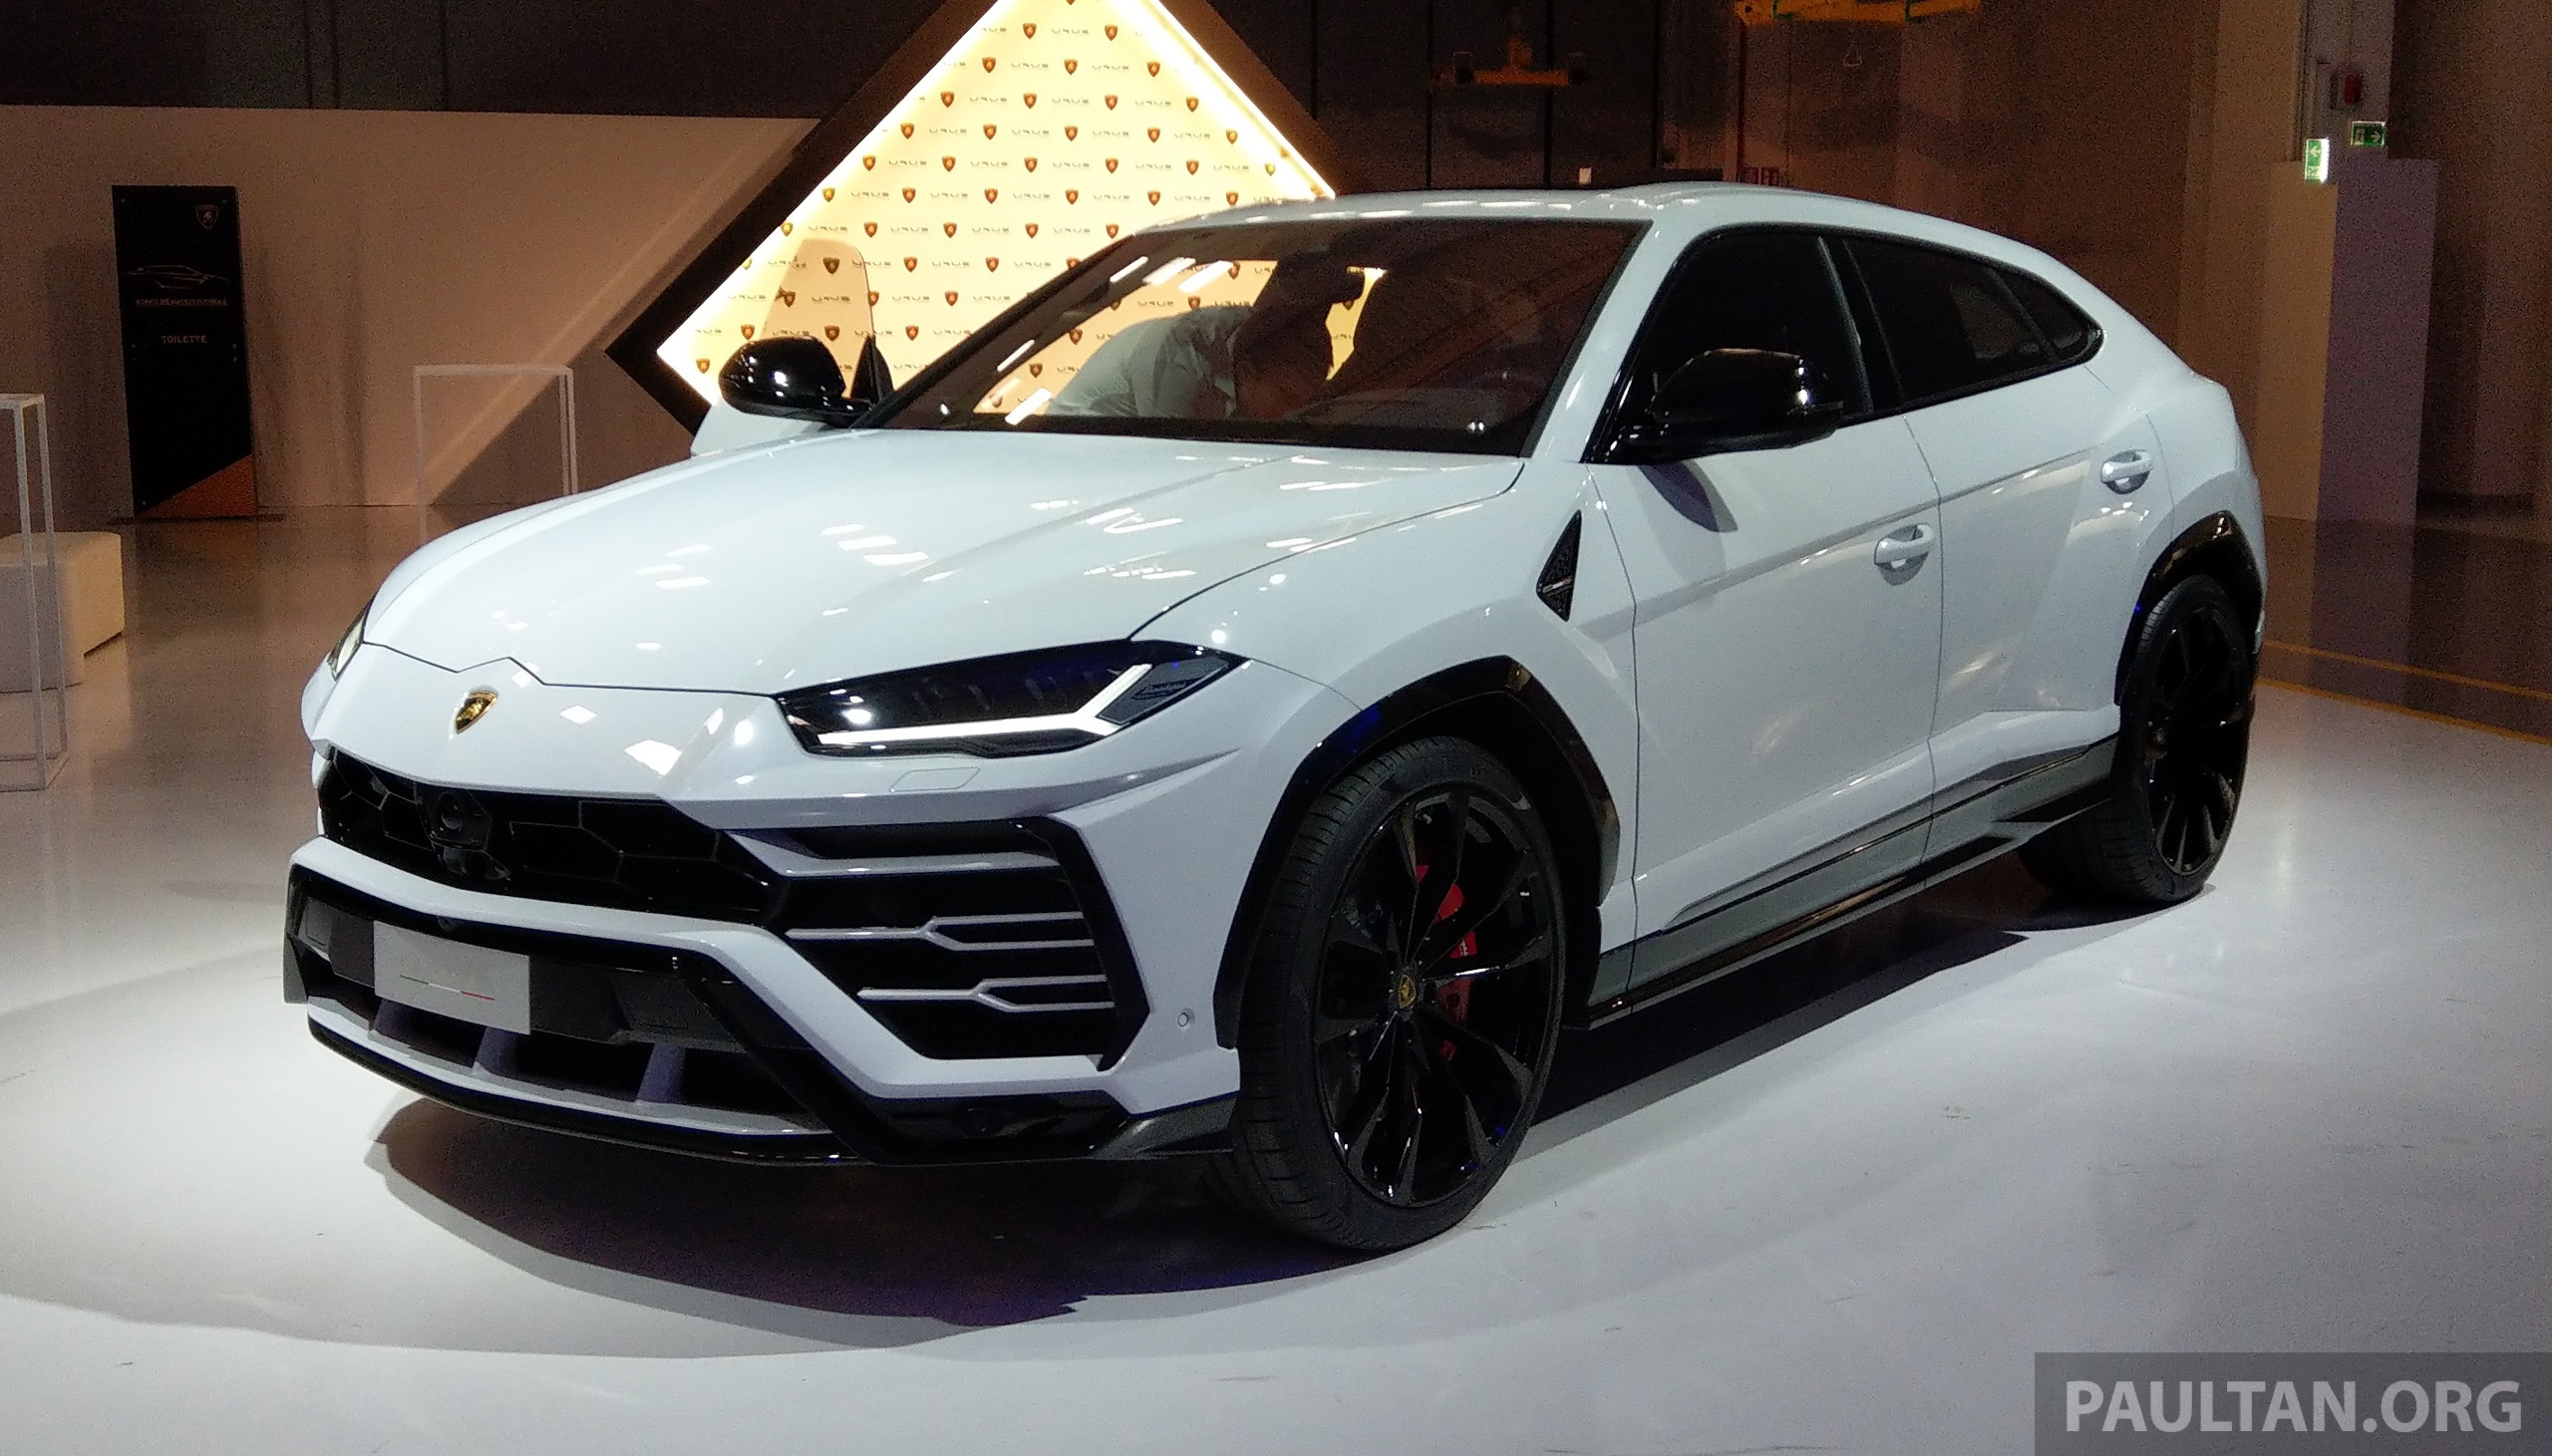 Lamborghini Urus Sant Agata S 650 Ps 850 Nm Suv Makes Its Official Debut Deliveries Begin In